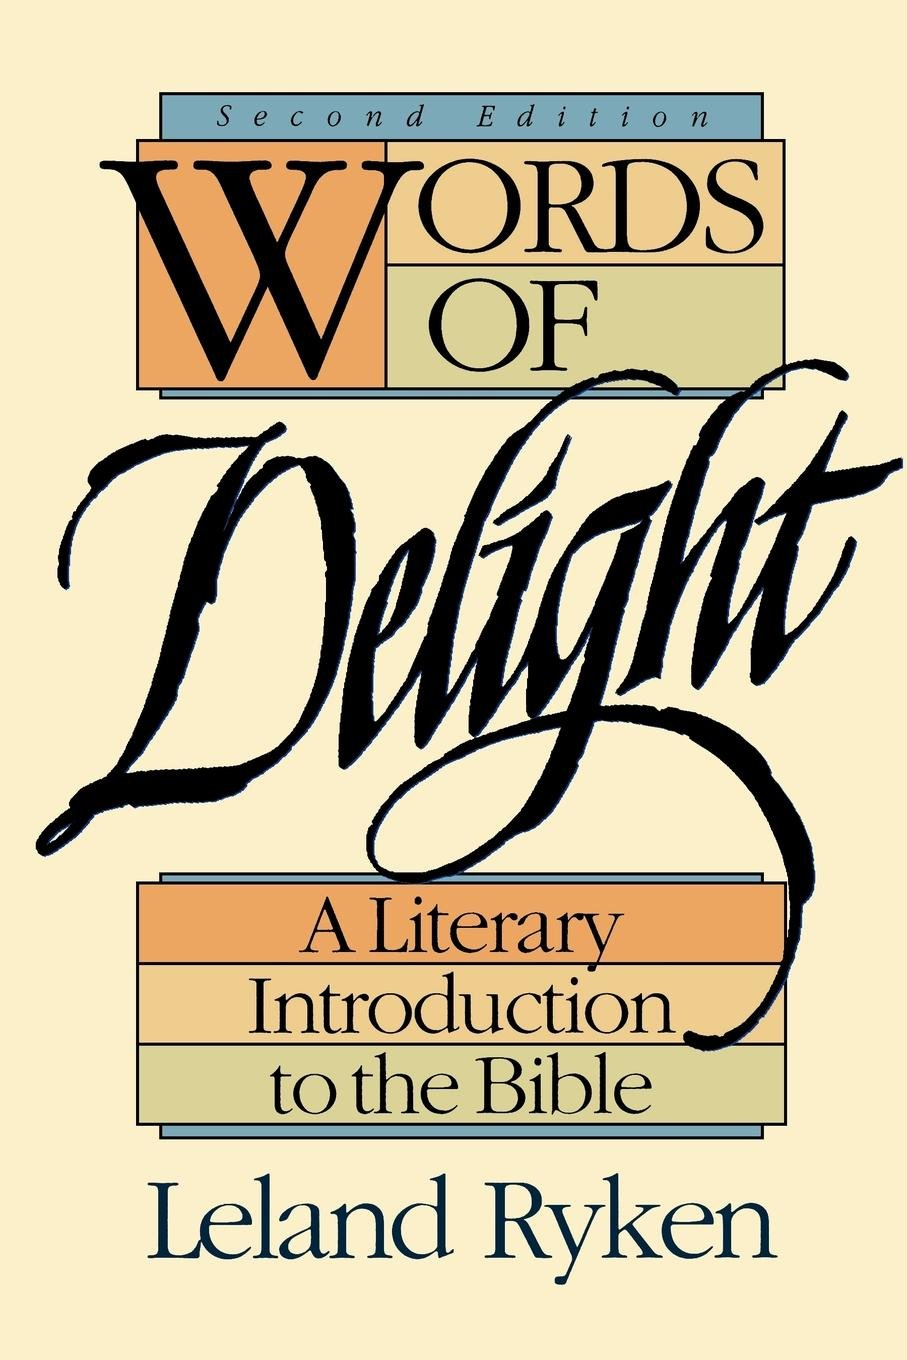 Words of Delight: A Literary Introduction to the Bible: Leland Ryken:  9780801077692: Amazon.com: Books